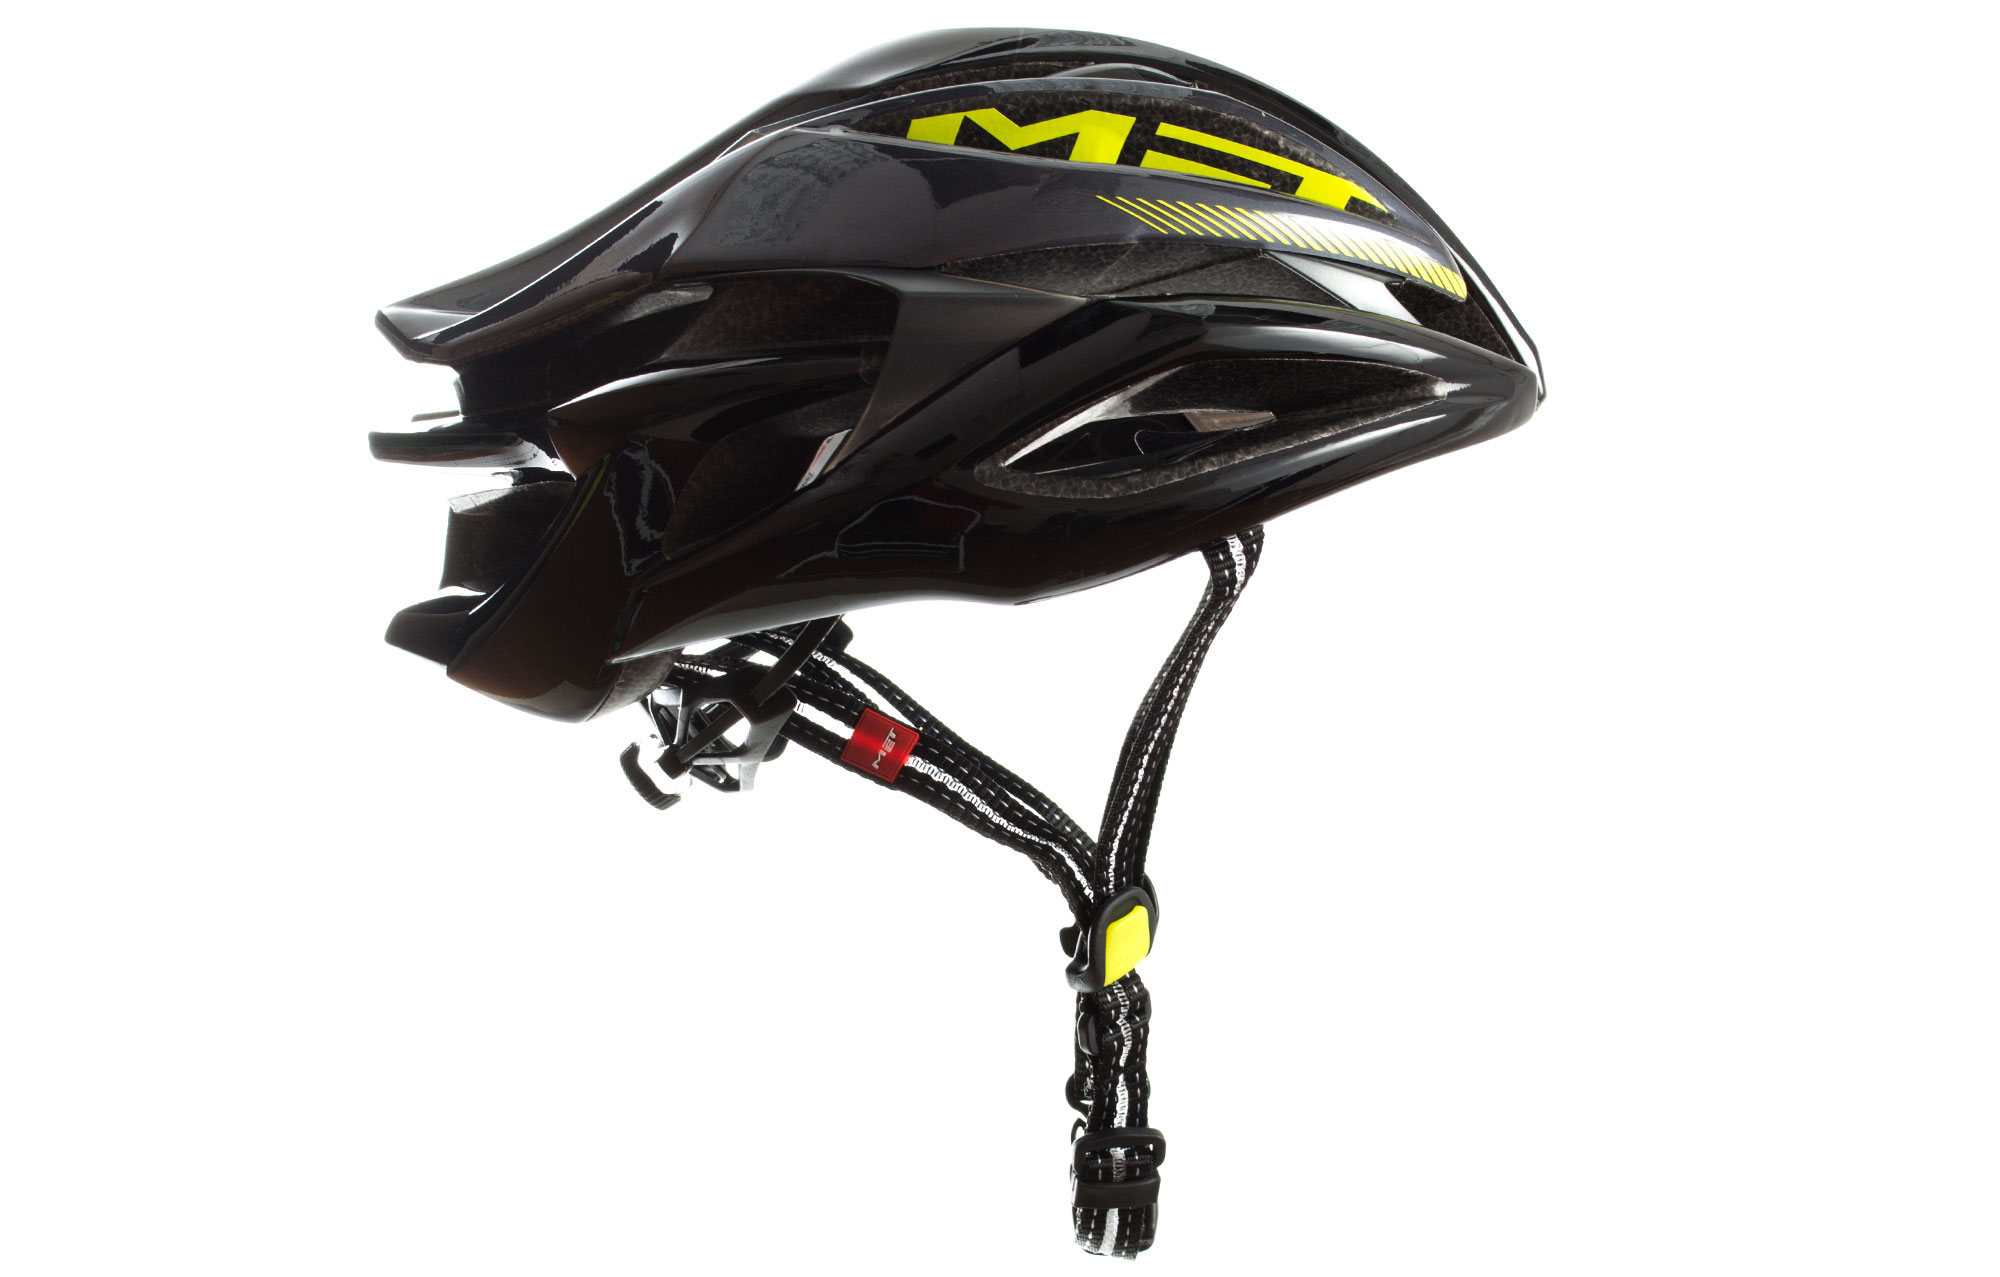 met sine thesis helmet Products 1 - 50 of 50  met sine thesis ice lite road cycling helmet 41 met sine thesis road cycling  helmet 42 met stradivarius hes road cycling helmet.